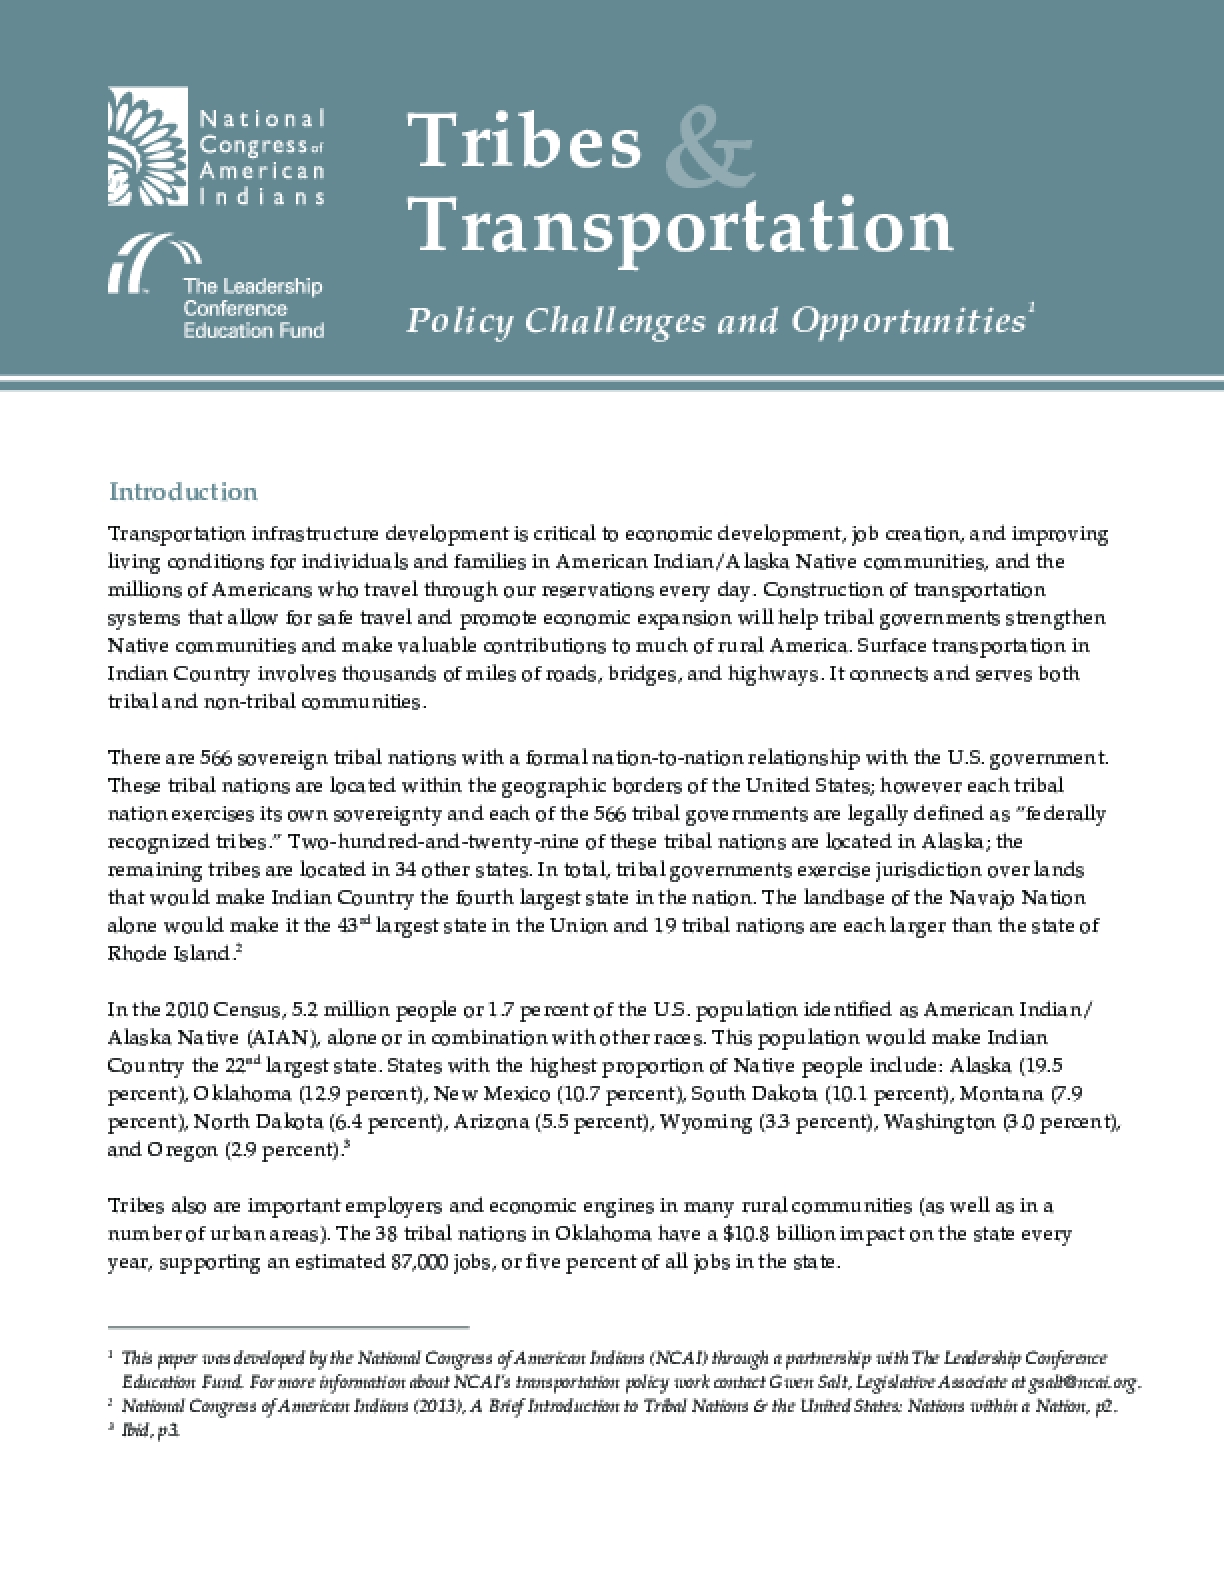 Tribes Transportation - Policy Challenges and Opportunities